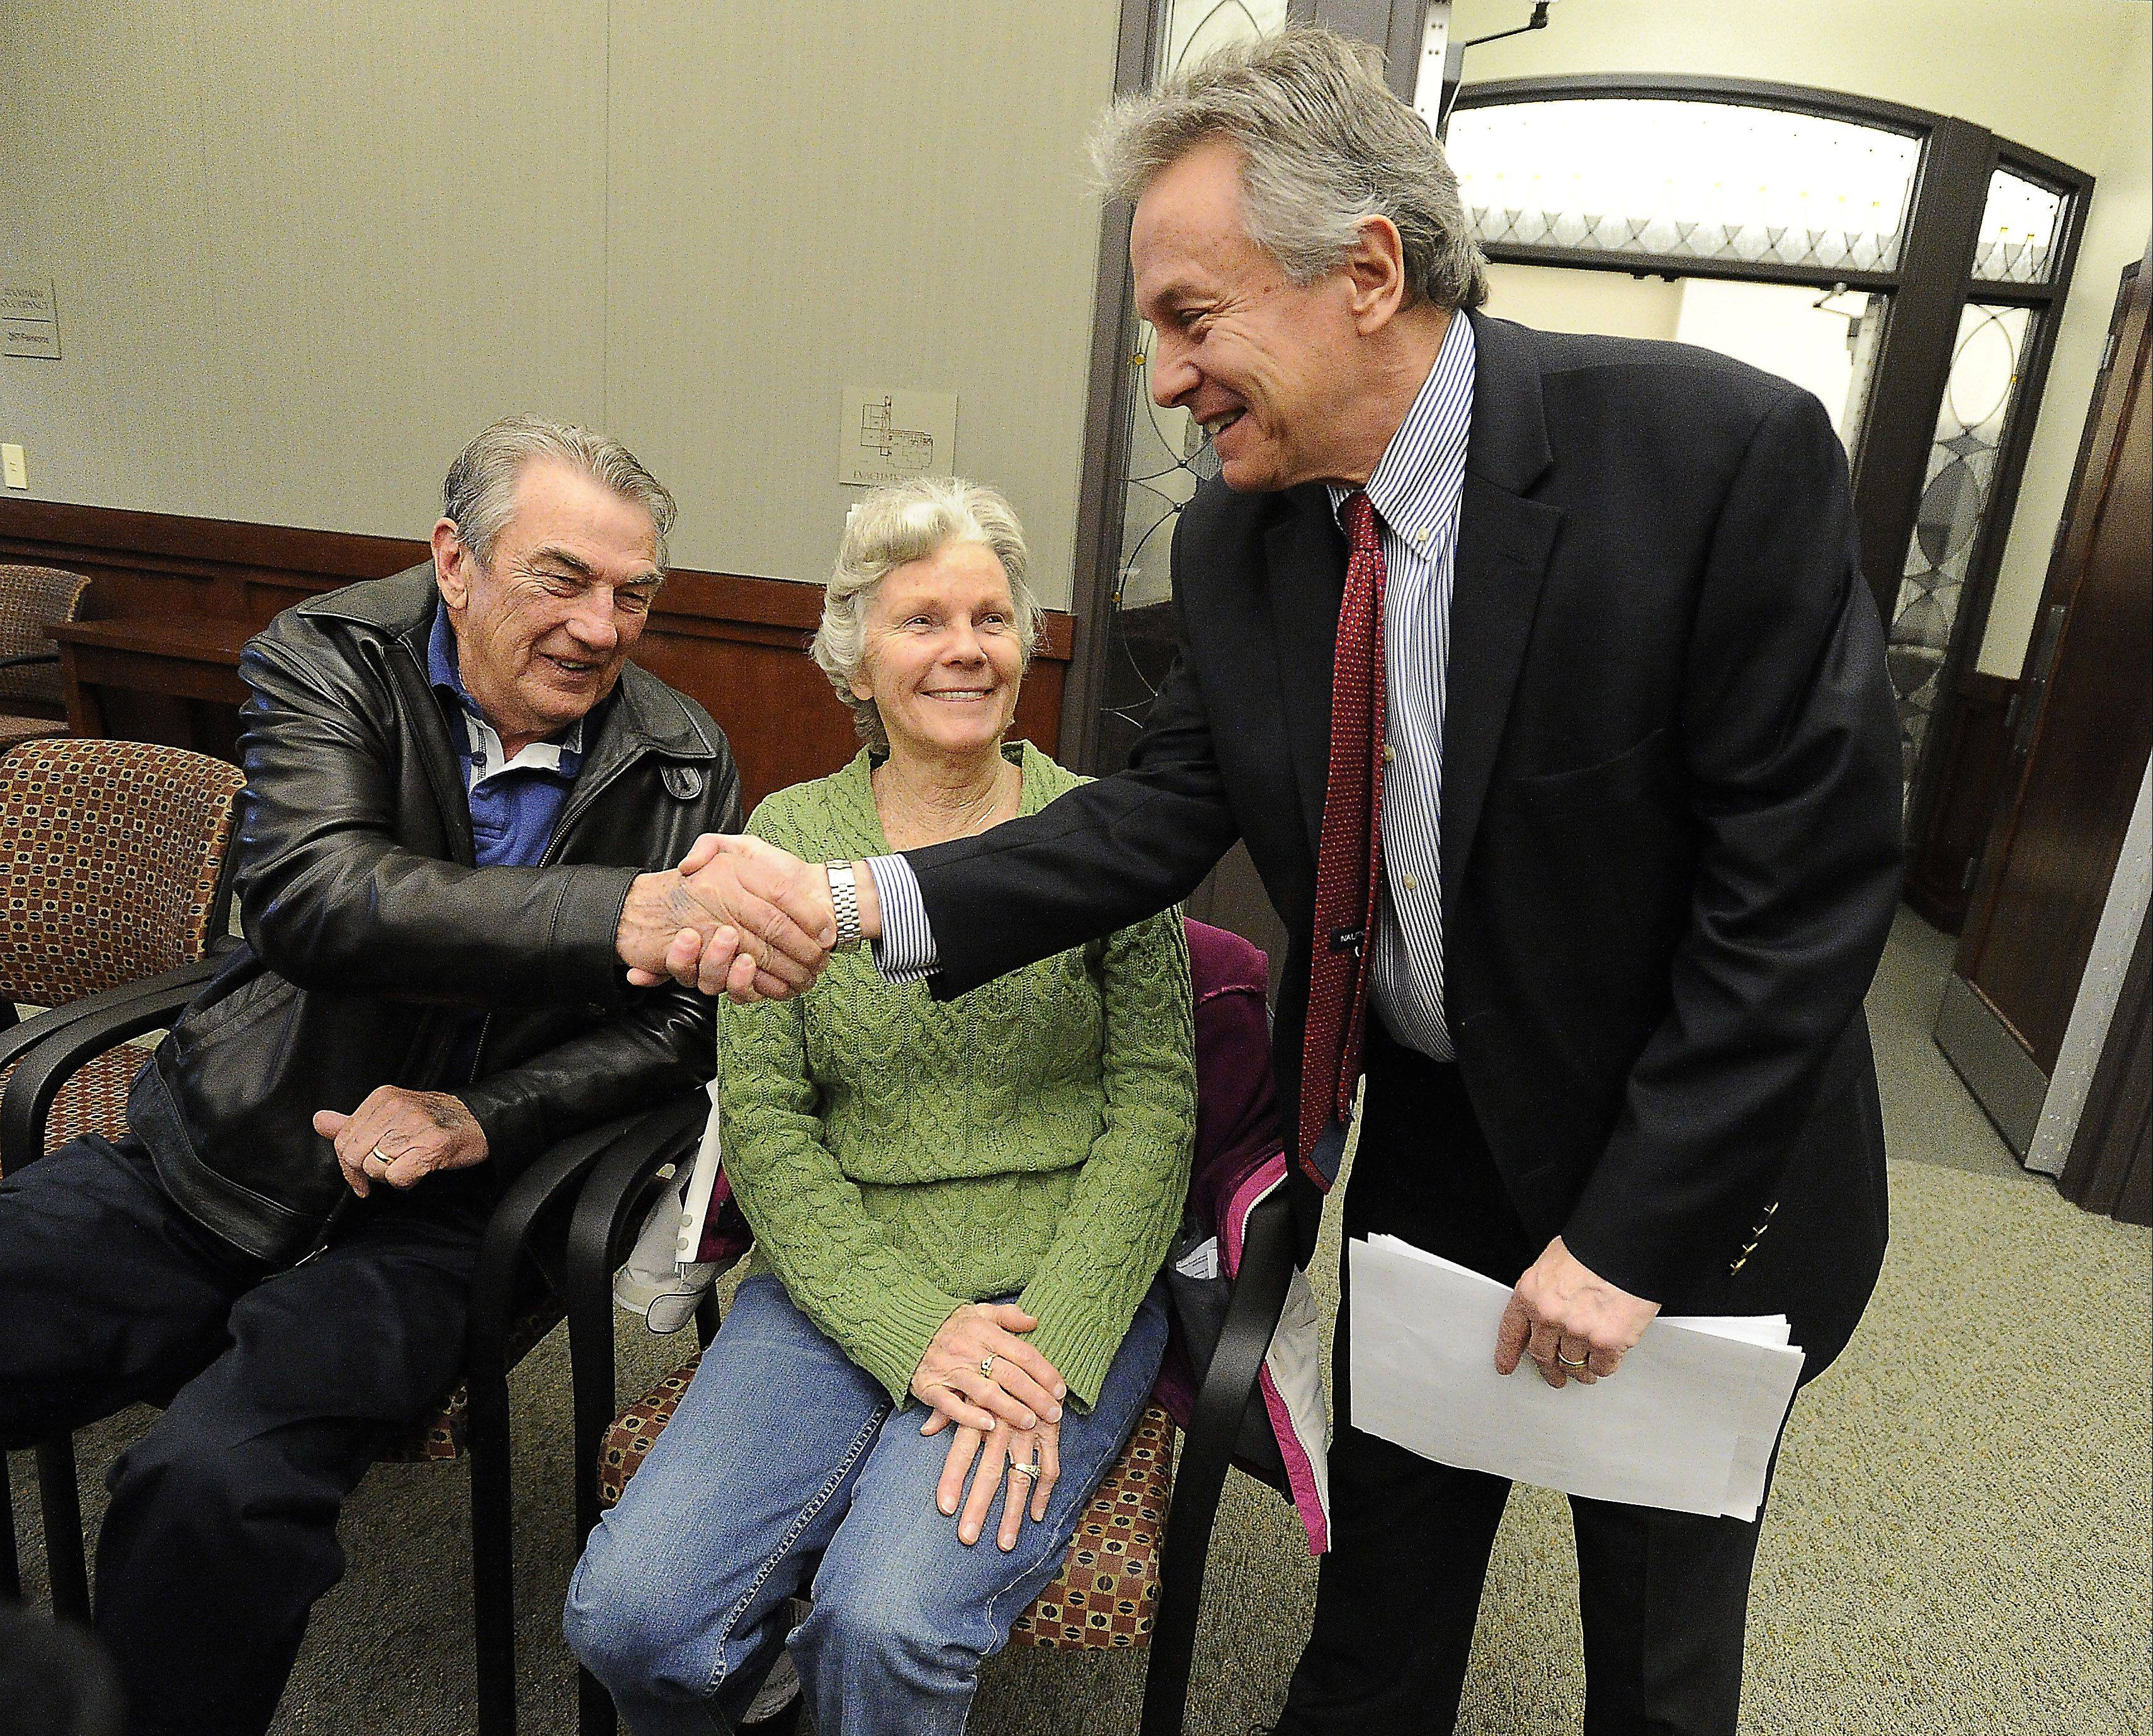 Mayoral candidate Mark Hellner greets Terry and Jean O'Connor before the League of Women Voters candidates forum on March 16.